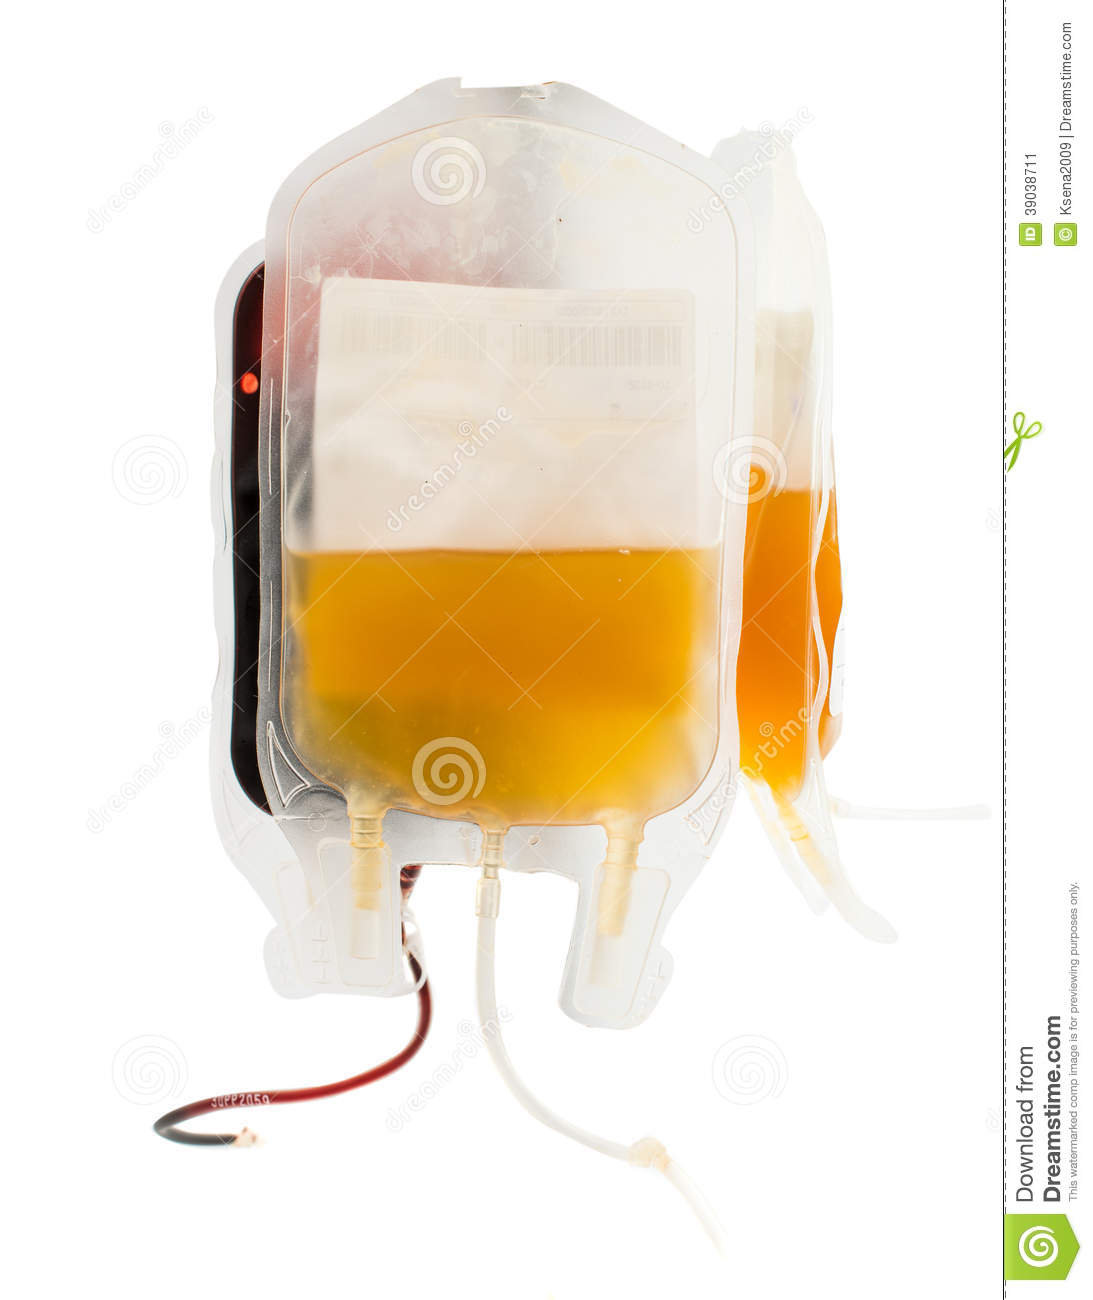 Bag Of Blood And Plasma Isolated Stock Photo - Image: 39038711